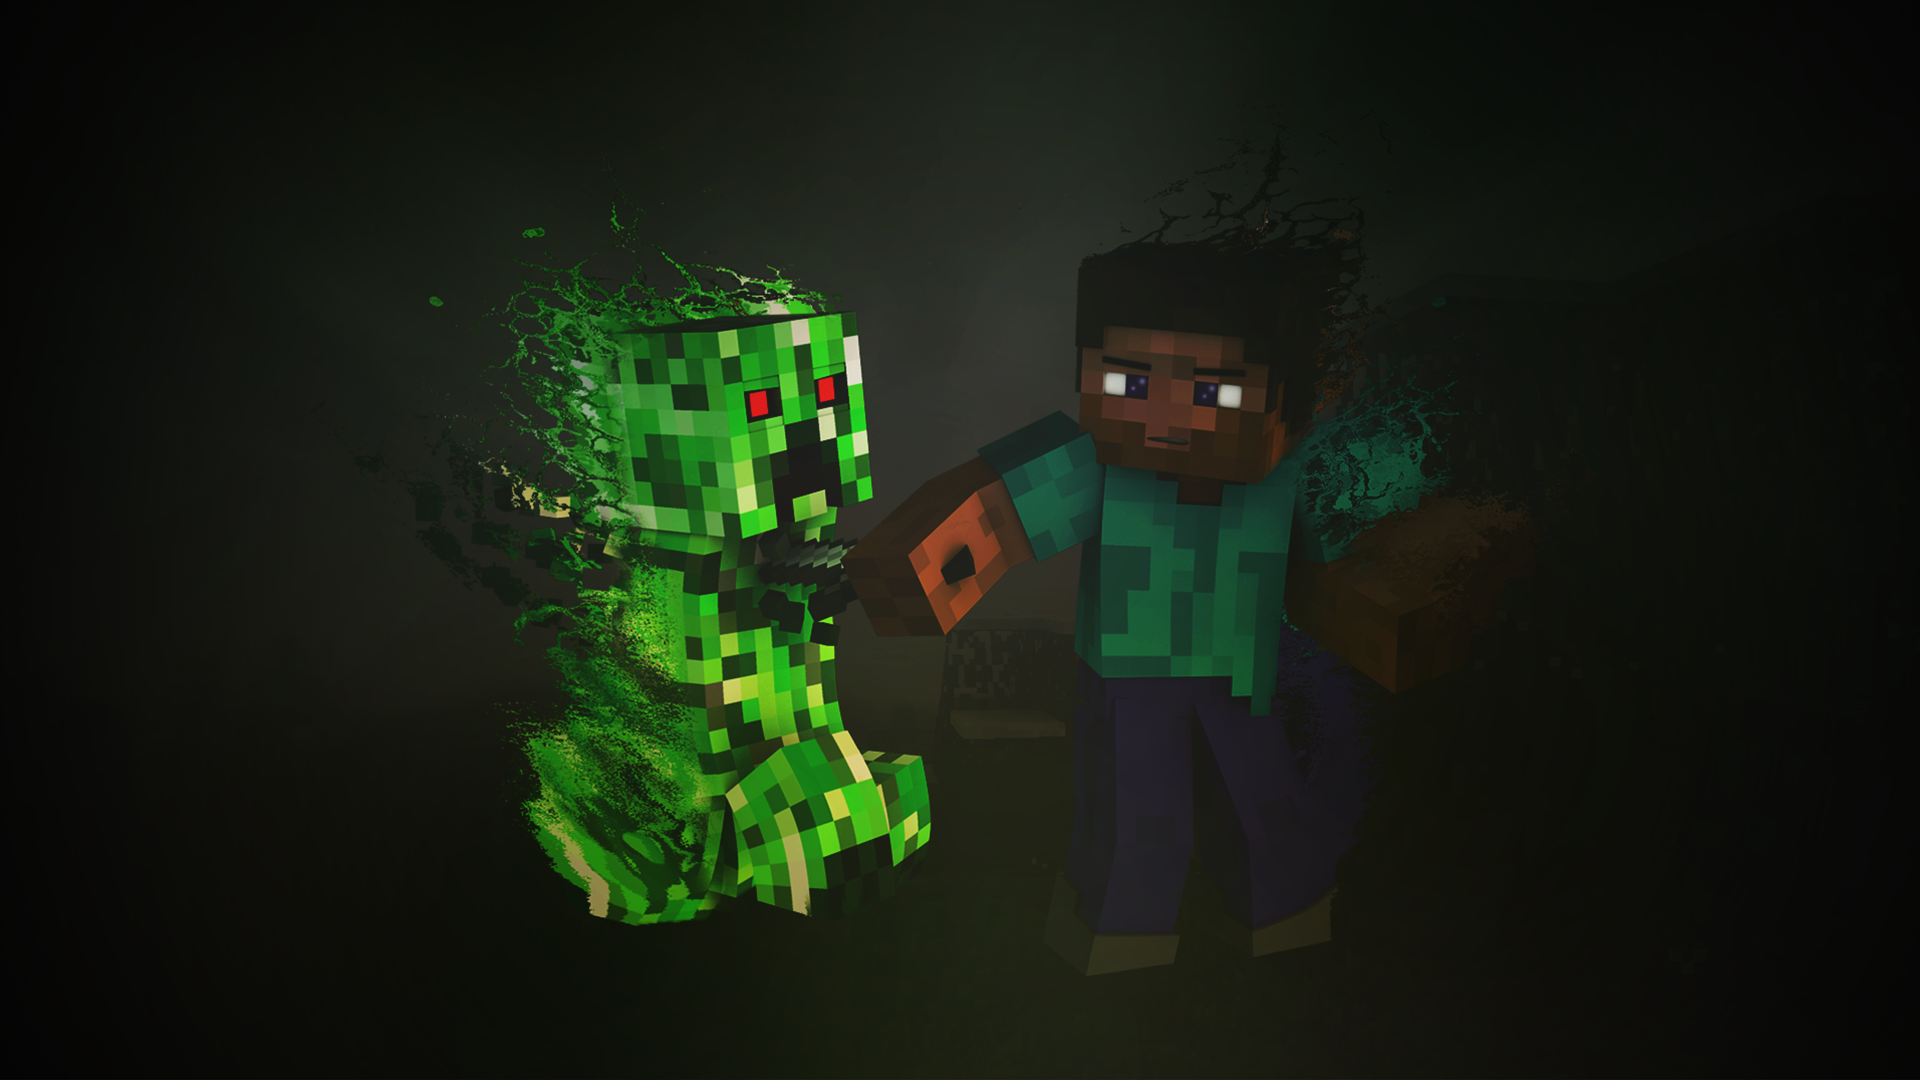 minecraft creeper hd games 4k wallpapers images